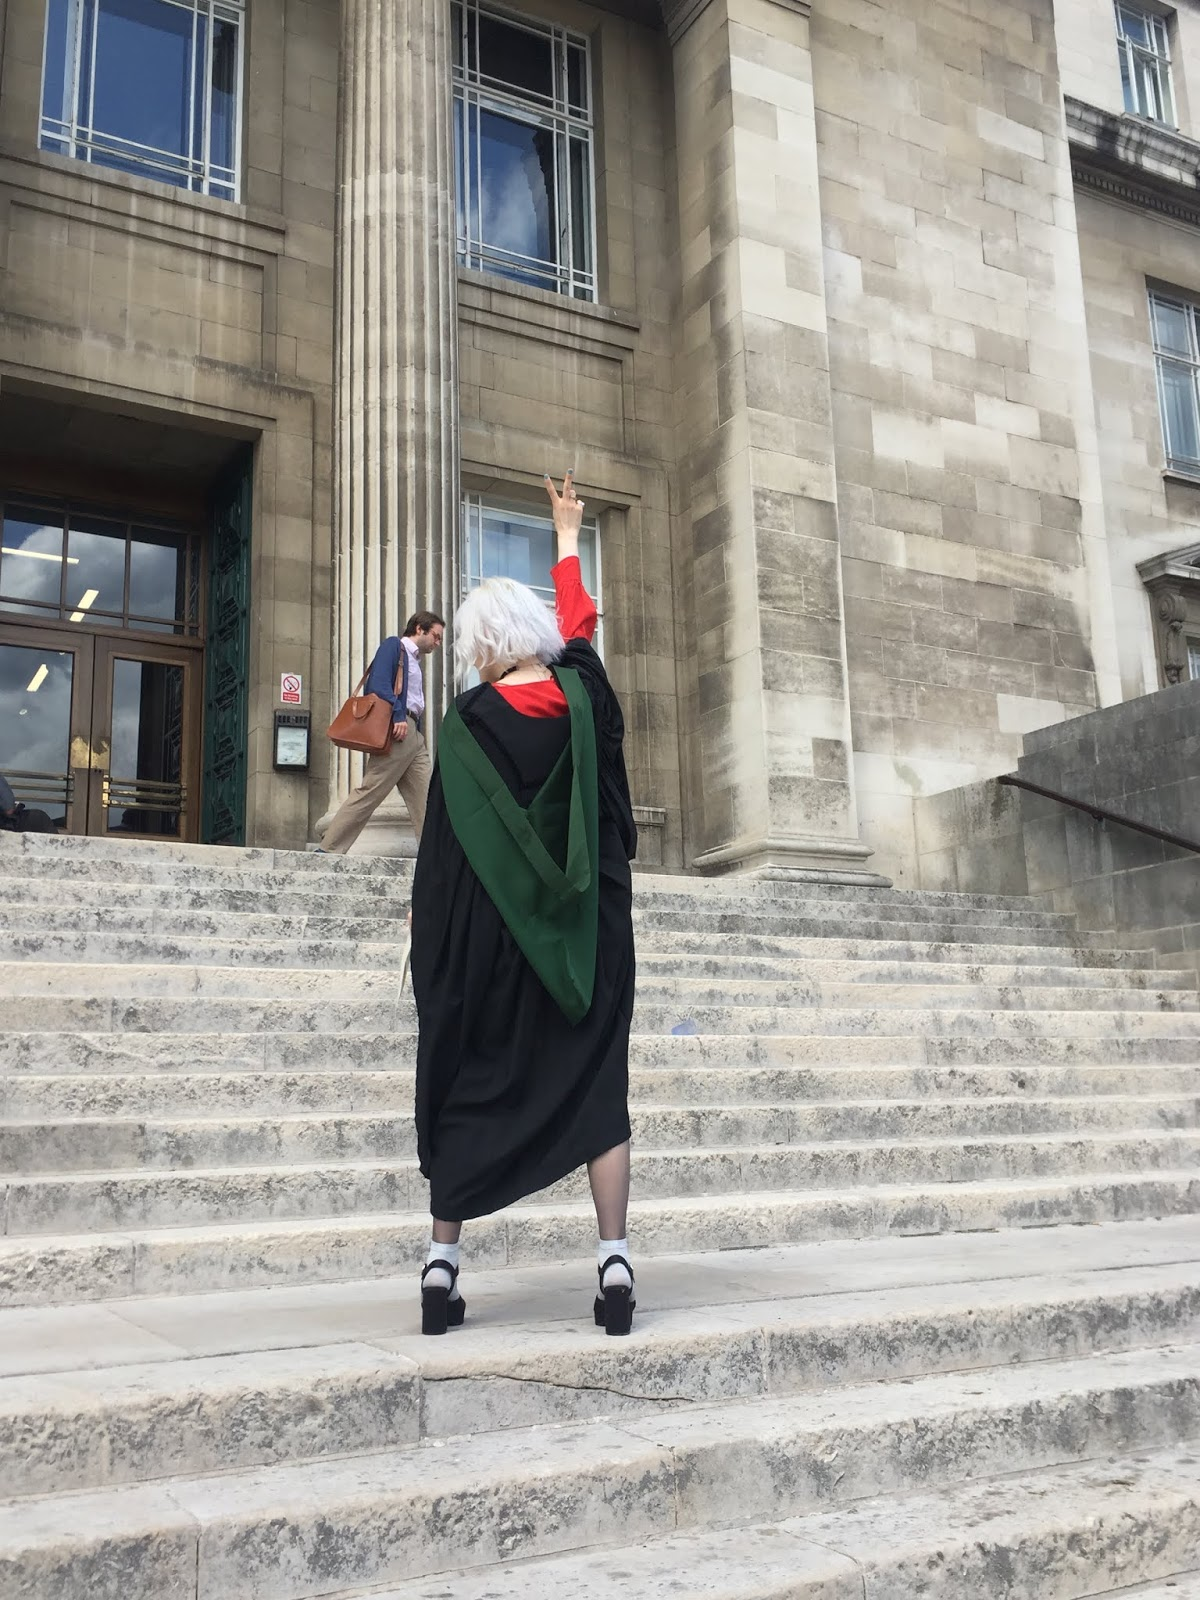 University of Leeds graduate on Parkinson steps making a V sign